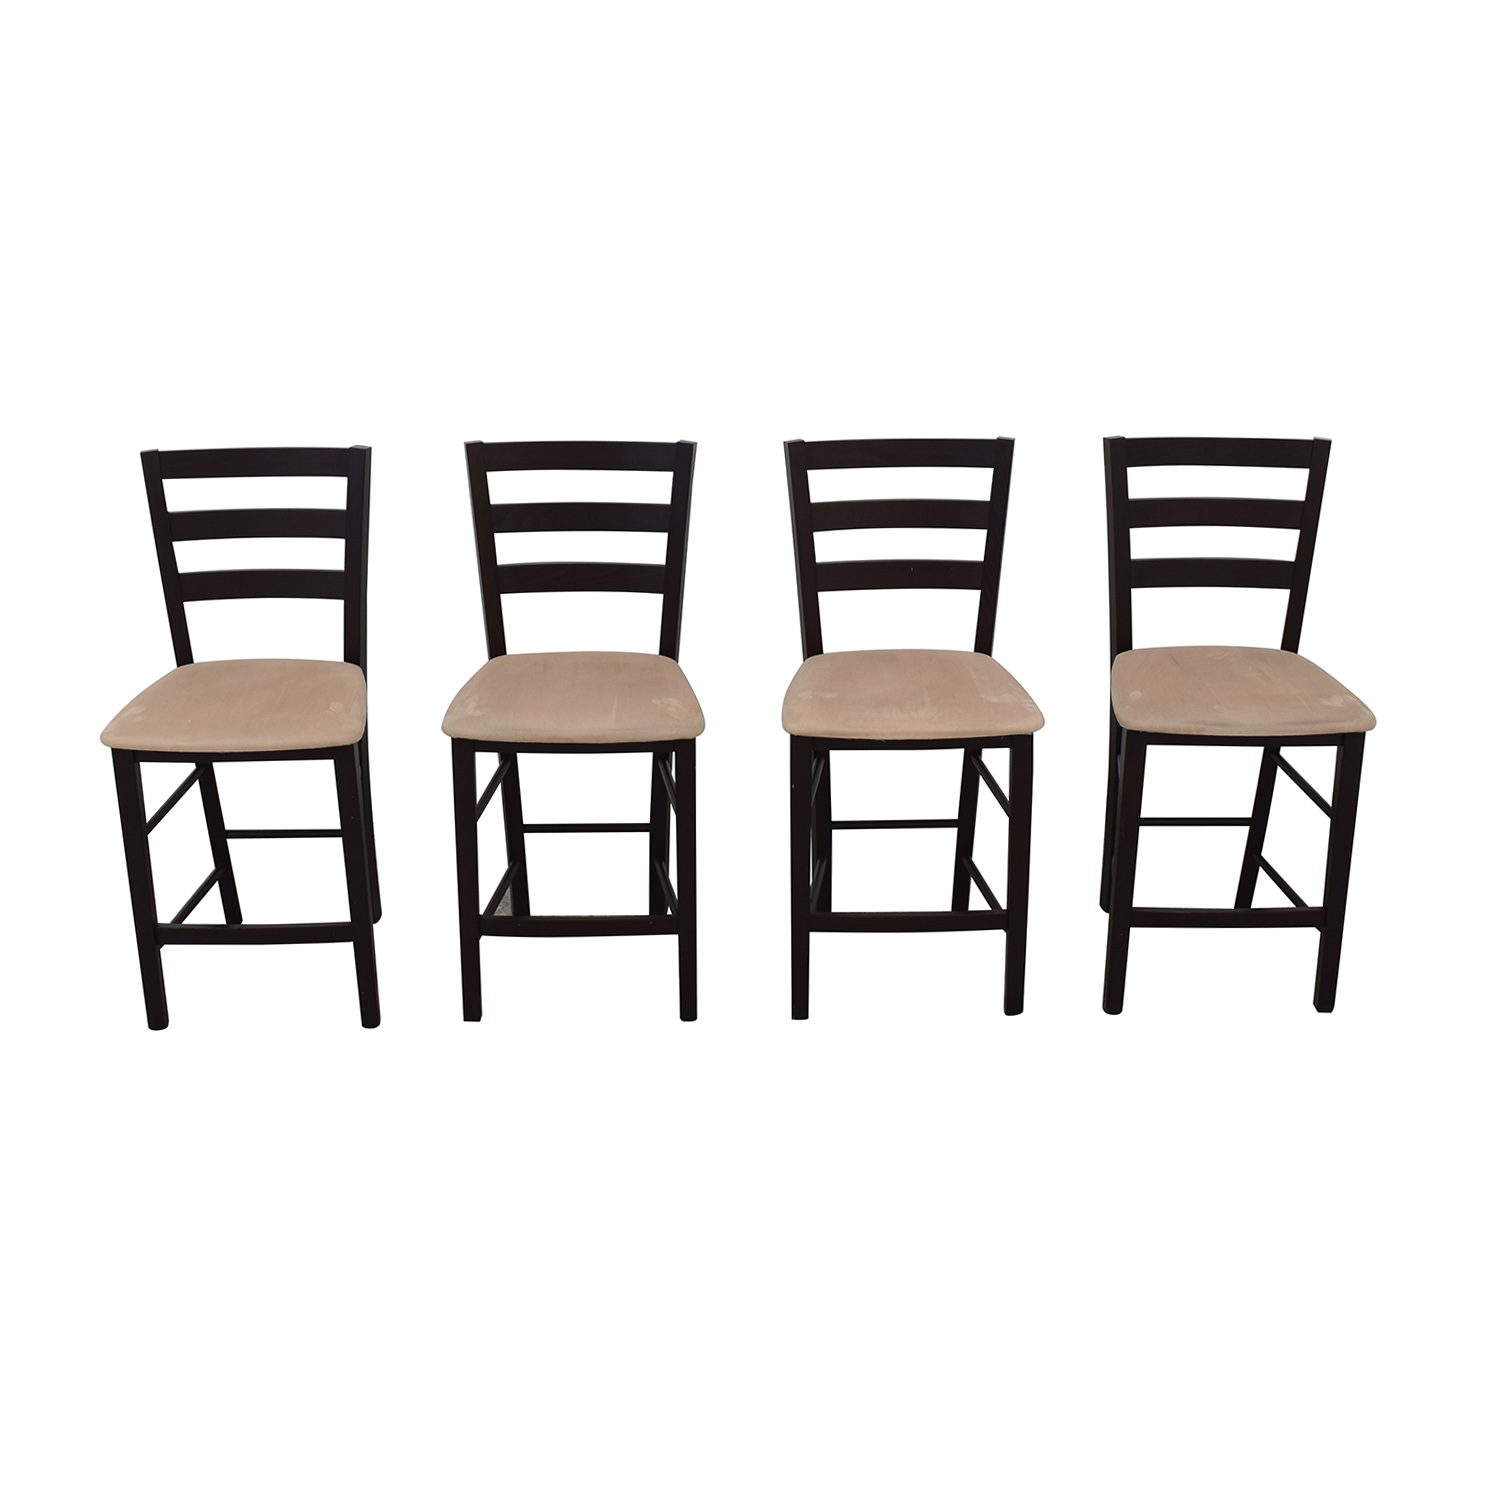 Macy's Macy's Cafe Latte Counter Height Bar Stools on sale